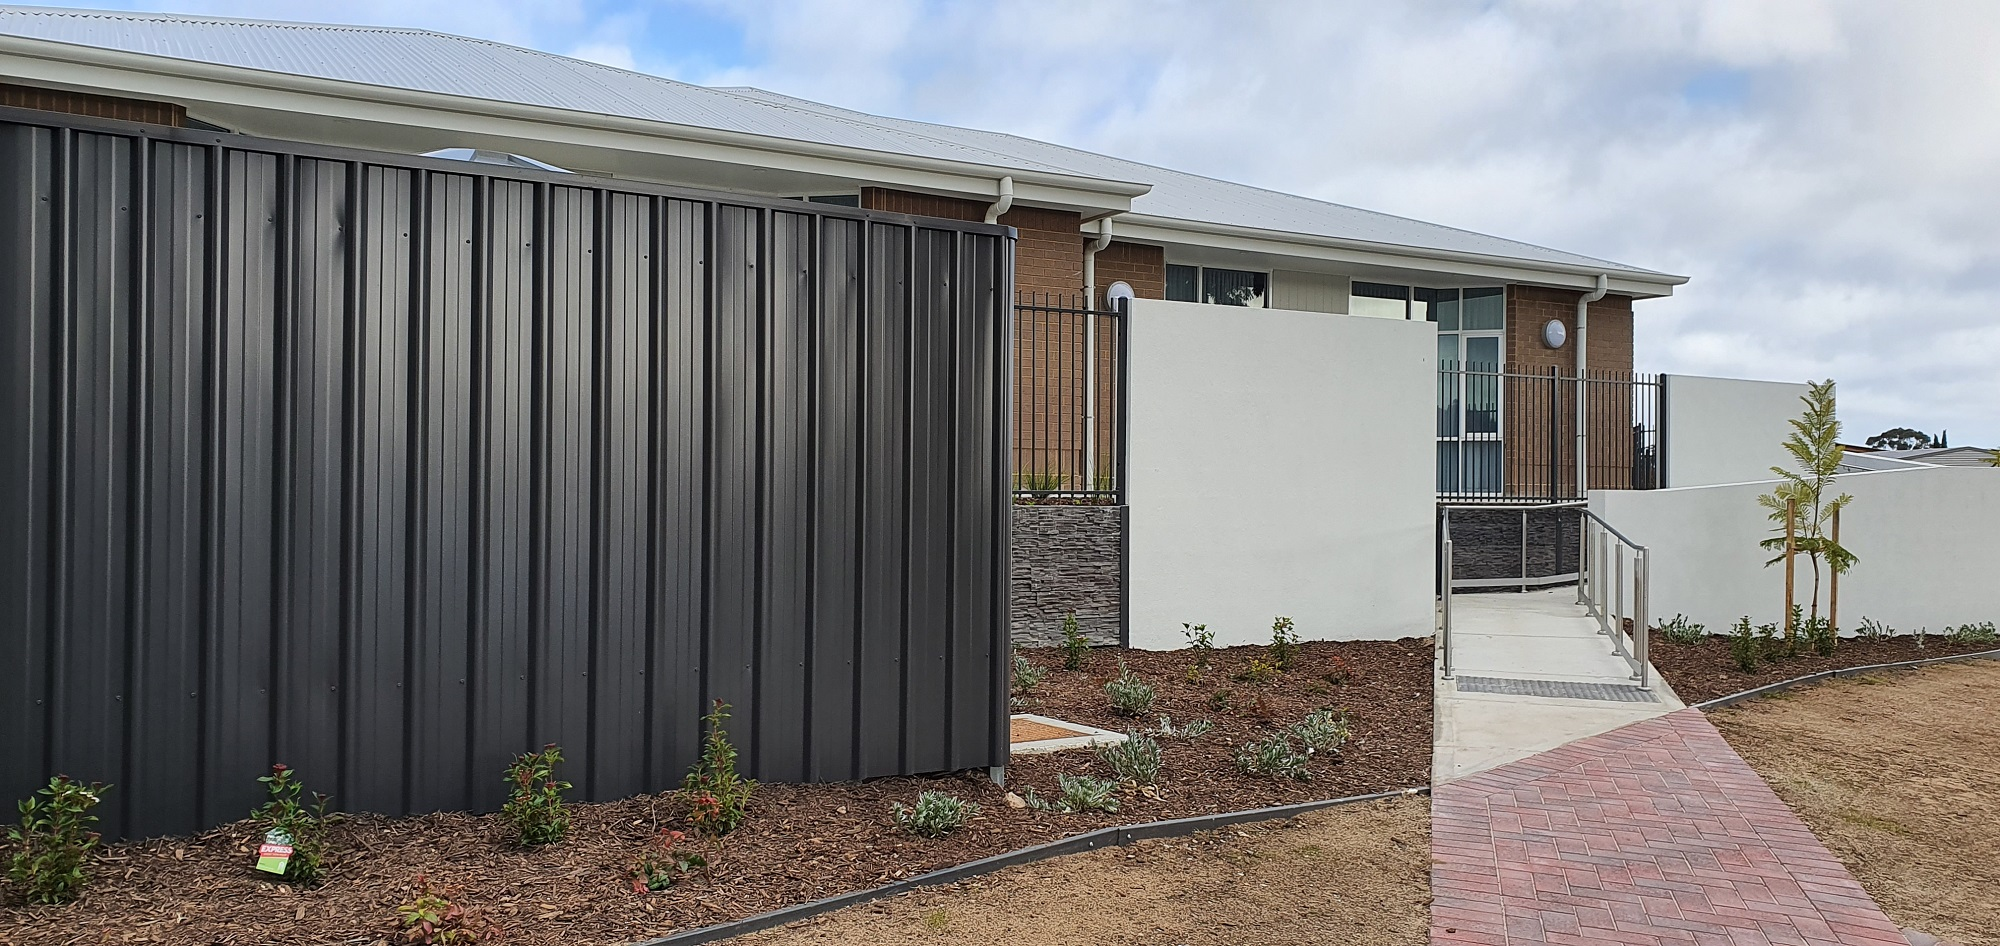 Commercial Fencing Adelaide Fence Centre Retirement Village Boundary Fencing